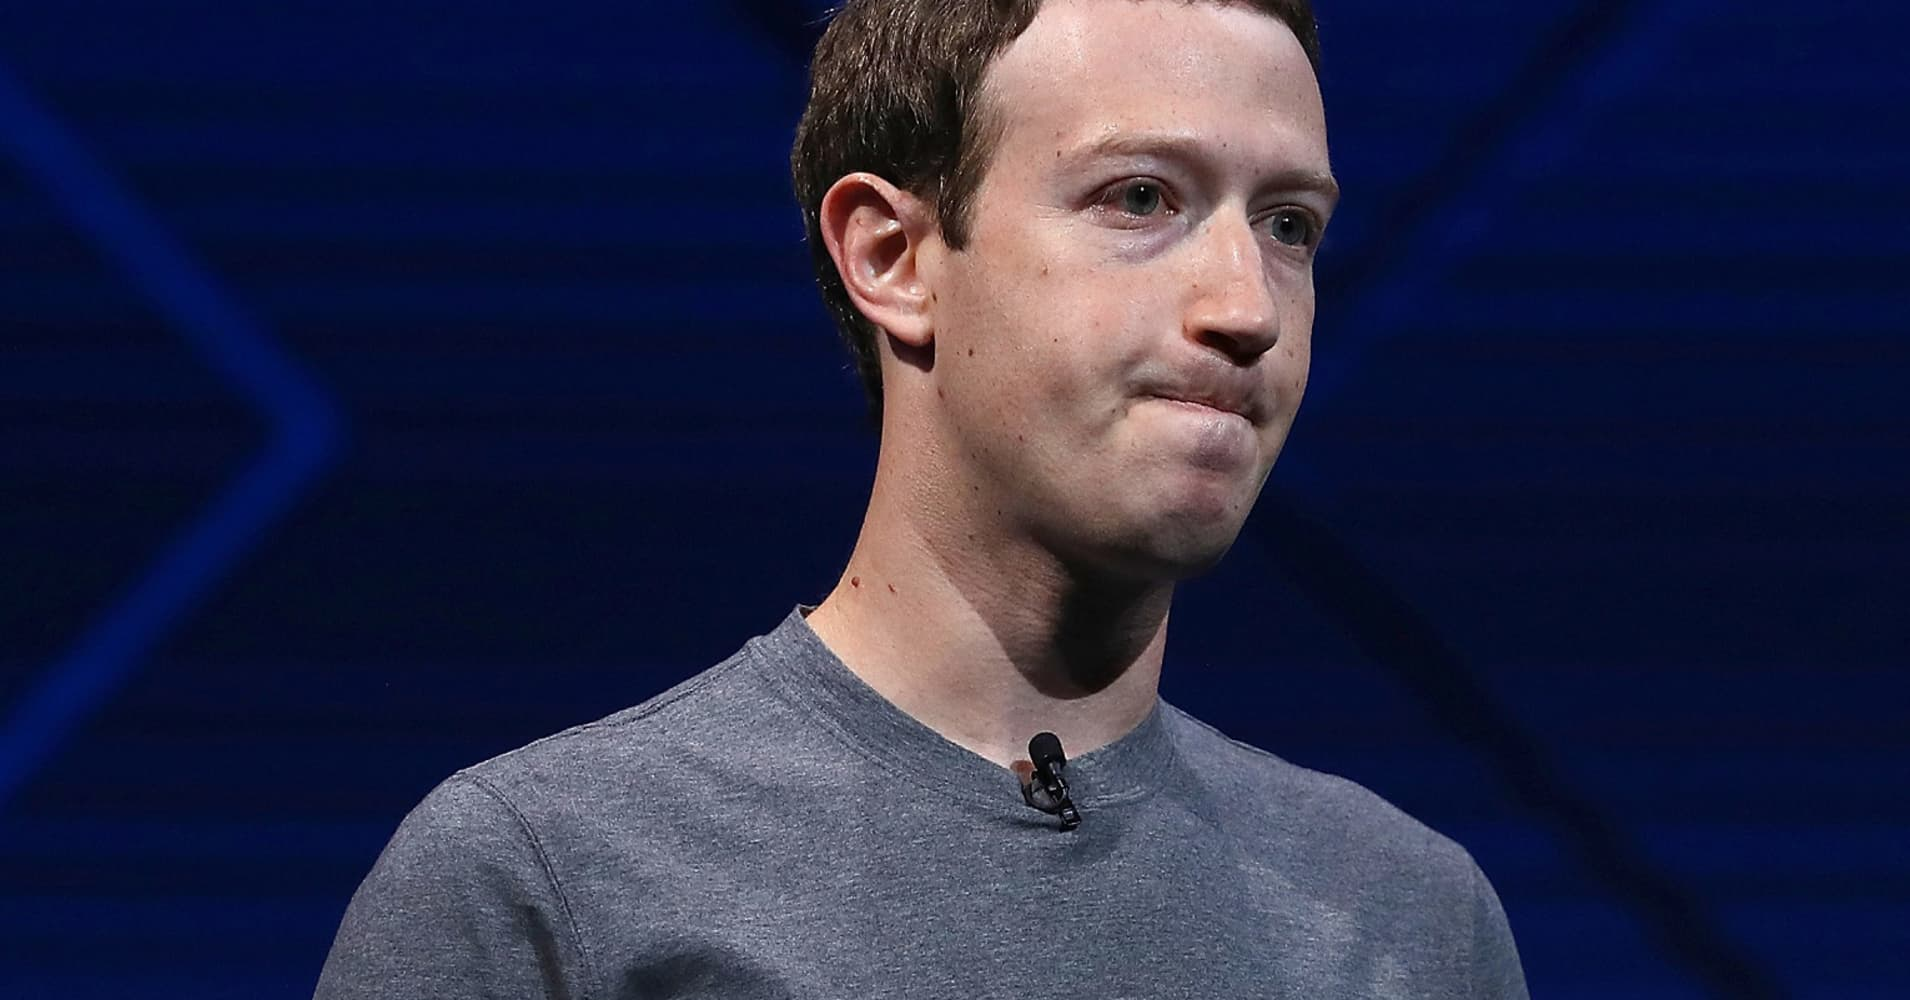 Facebook just admitted that using Facebook can be bad for you